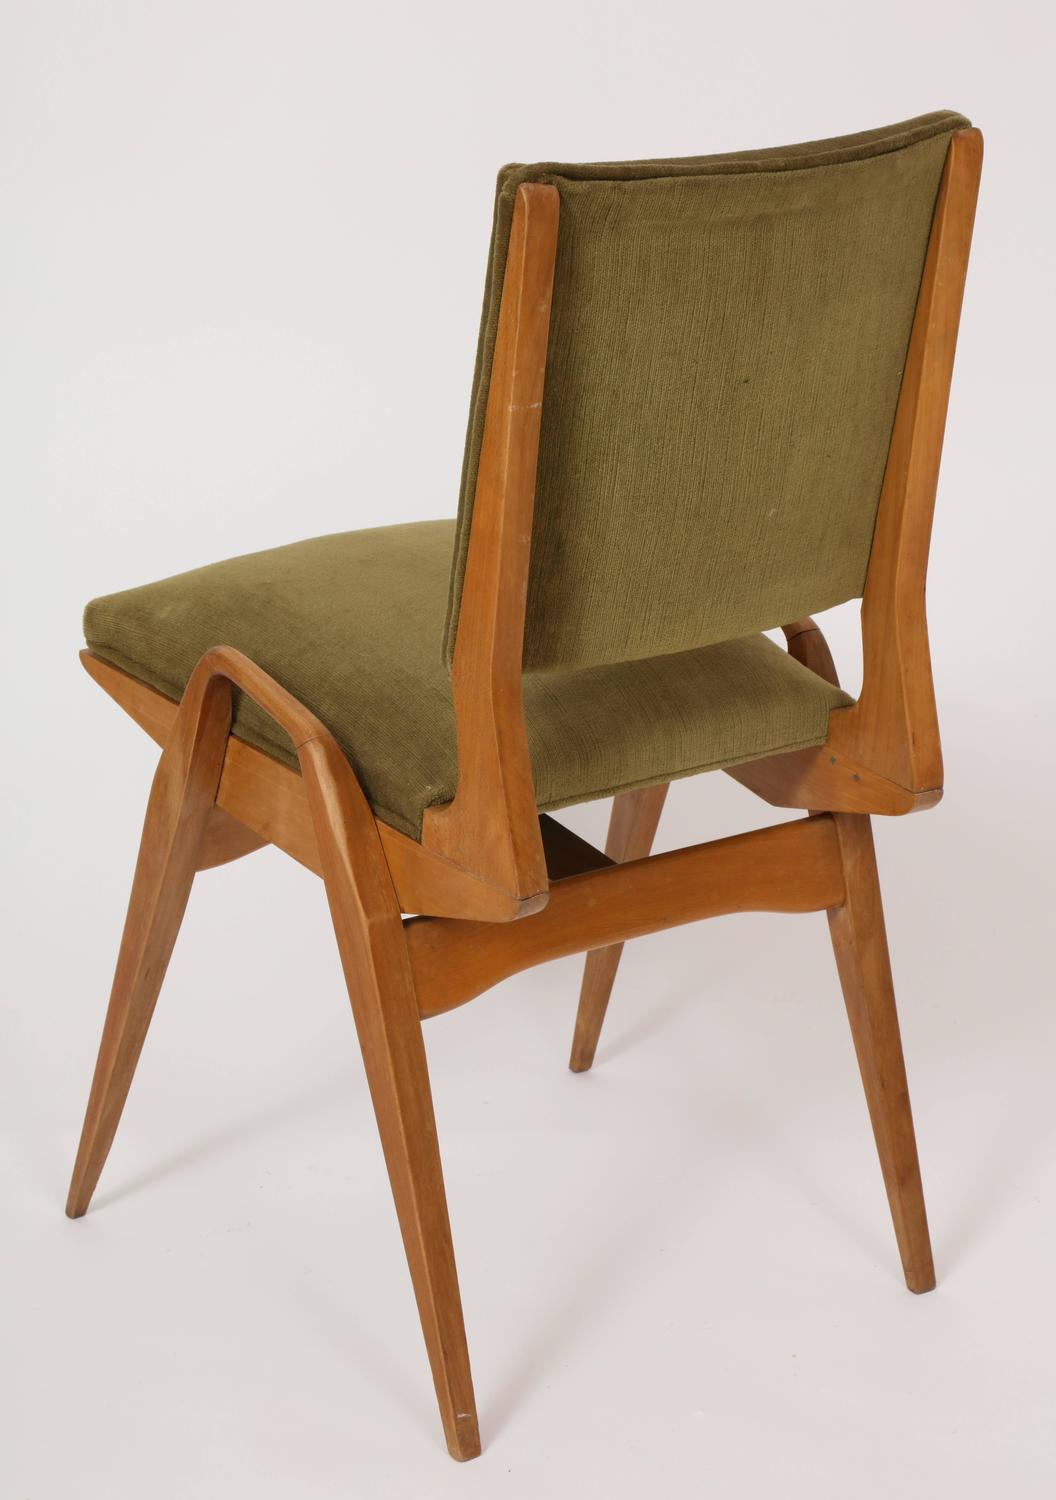 pre tables and chairs fisher price rainforest high chair replacement parts french mid century dining 1950s maurice